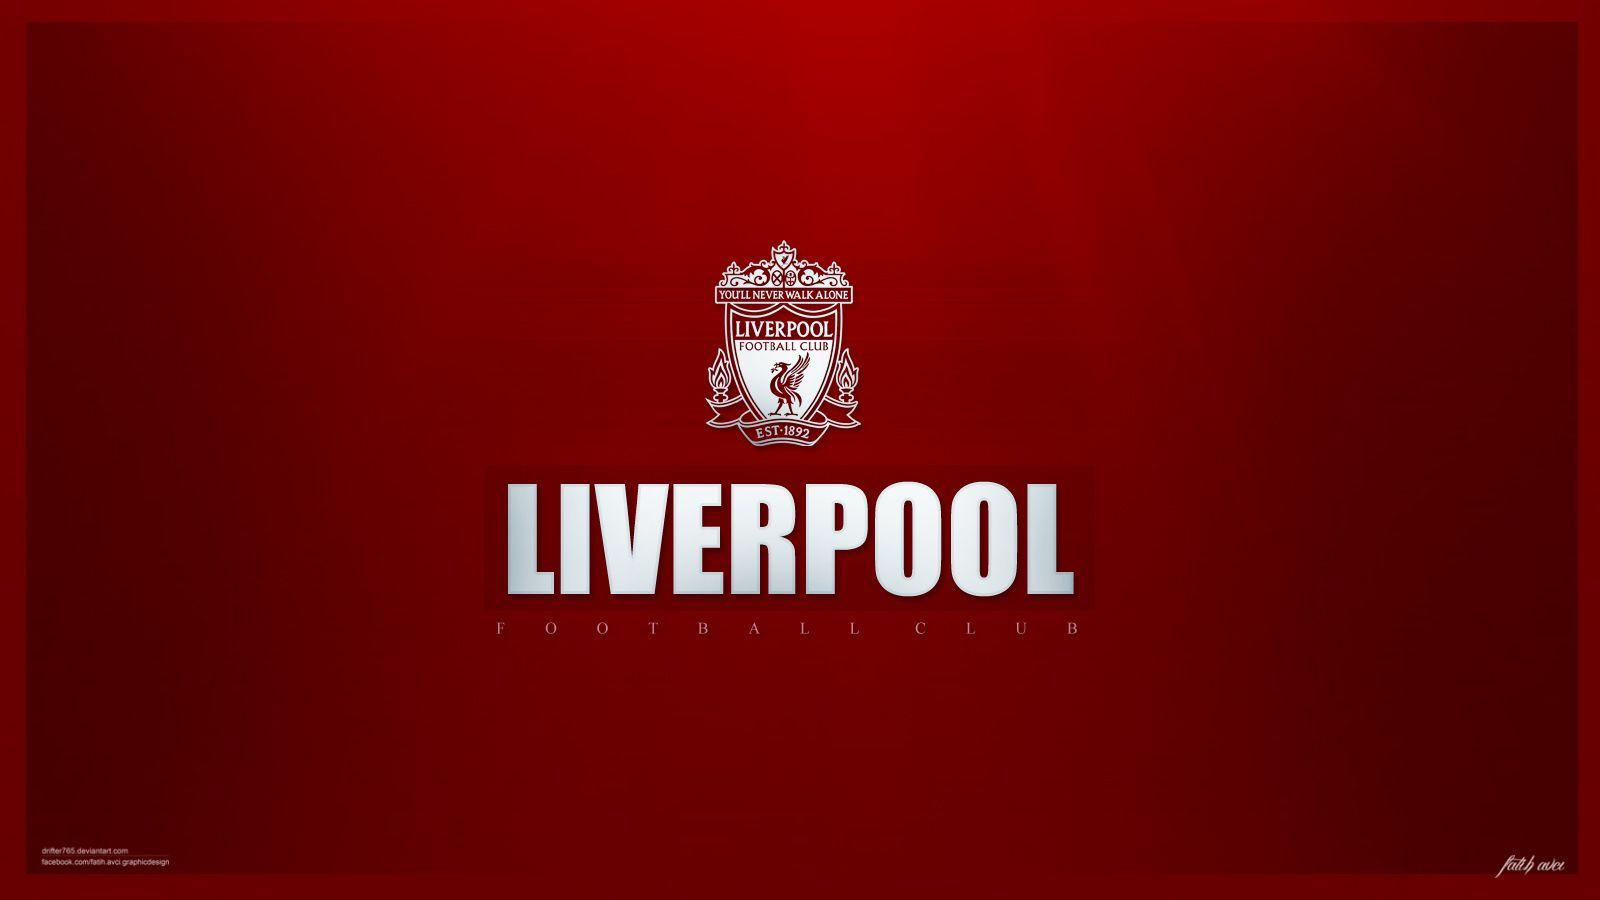 liverpool-fc-wallpapers-18.jpg